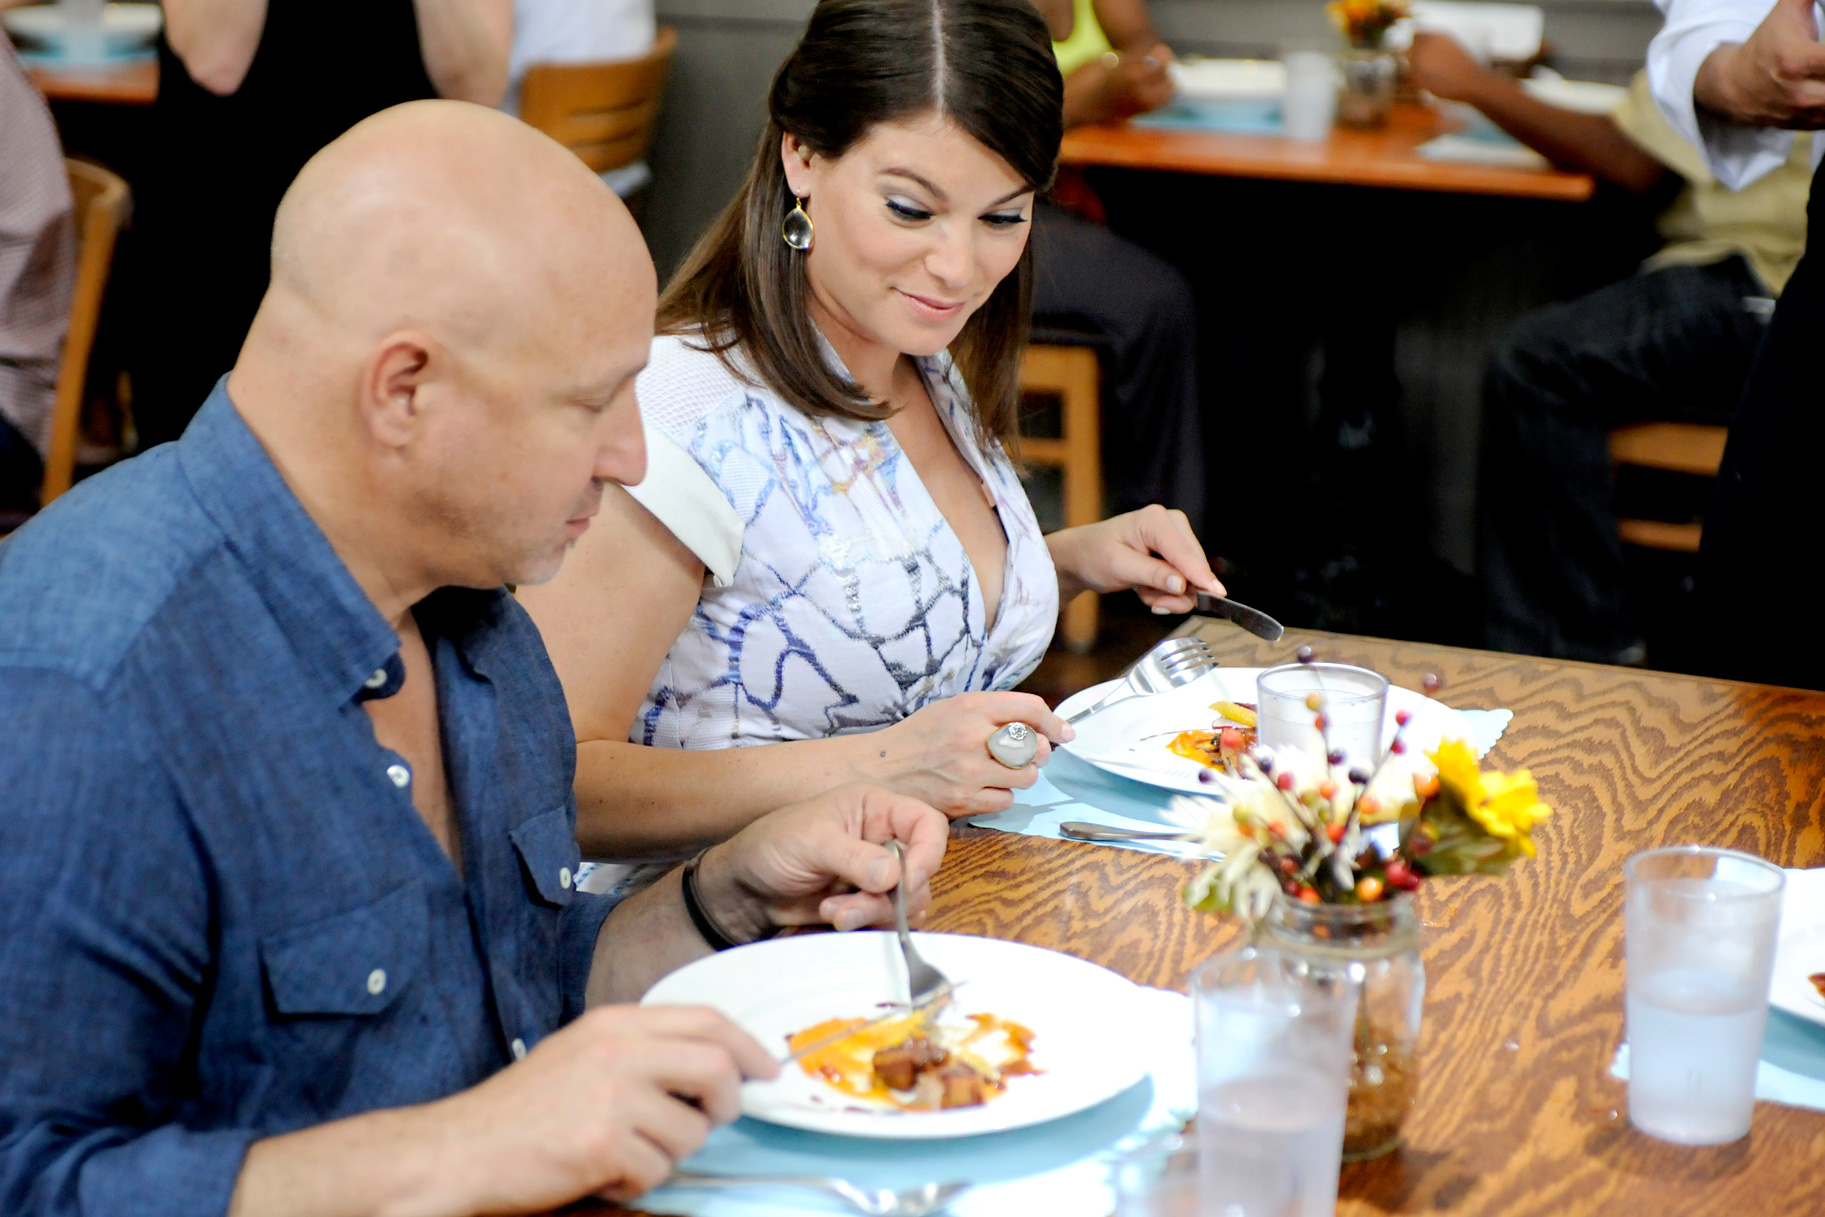 The good and bad dishes of Top Chef in 12 images 7